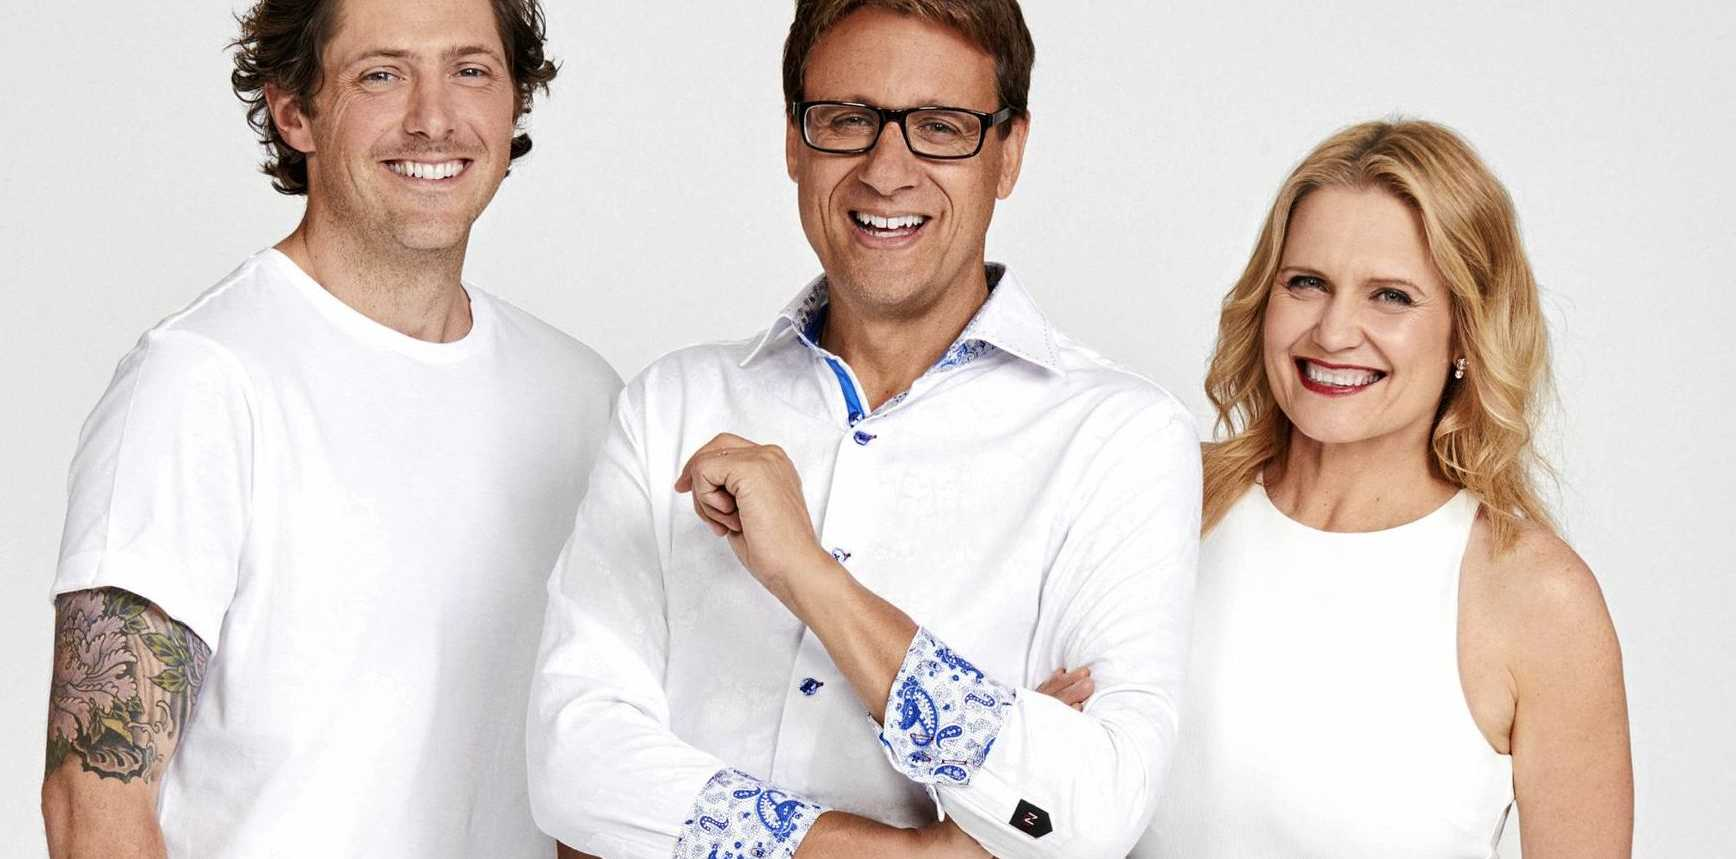 Charlie Albone, Andrew Winter and Shaynna Blaze return for season 10 of Selling Houses Australia. Supplied by Foxtel.